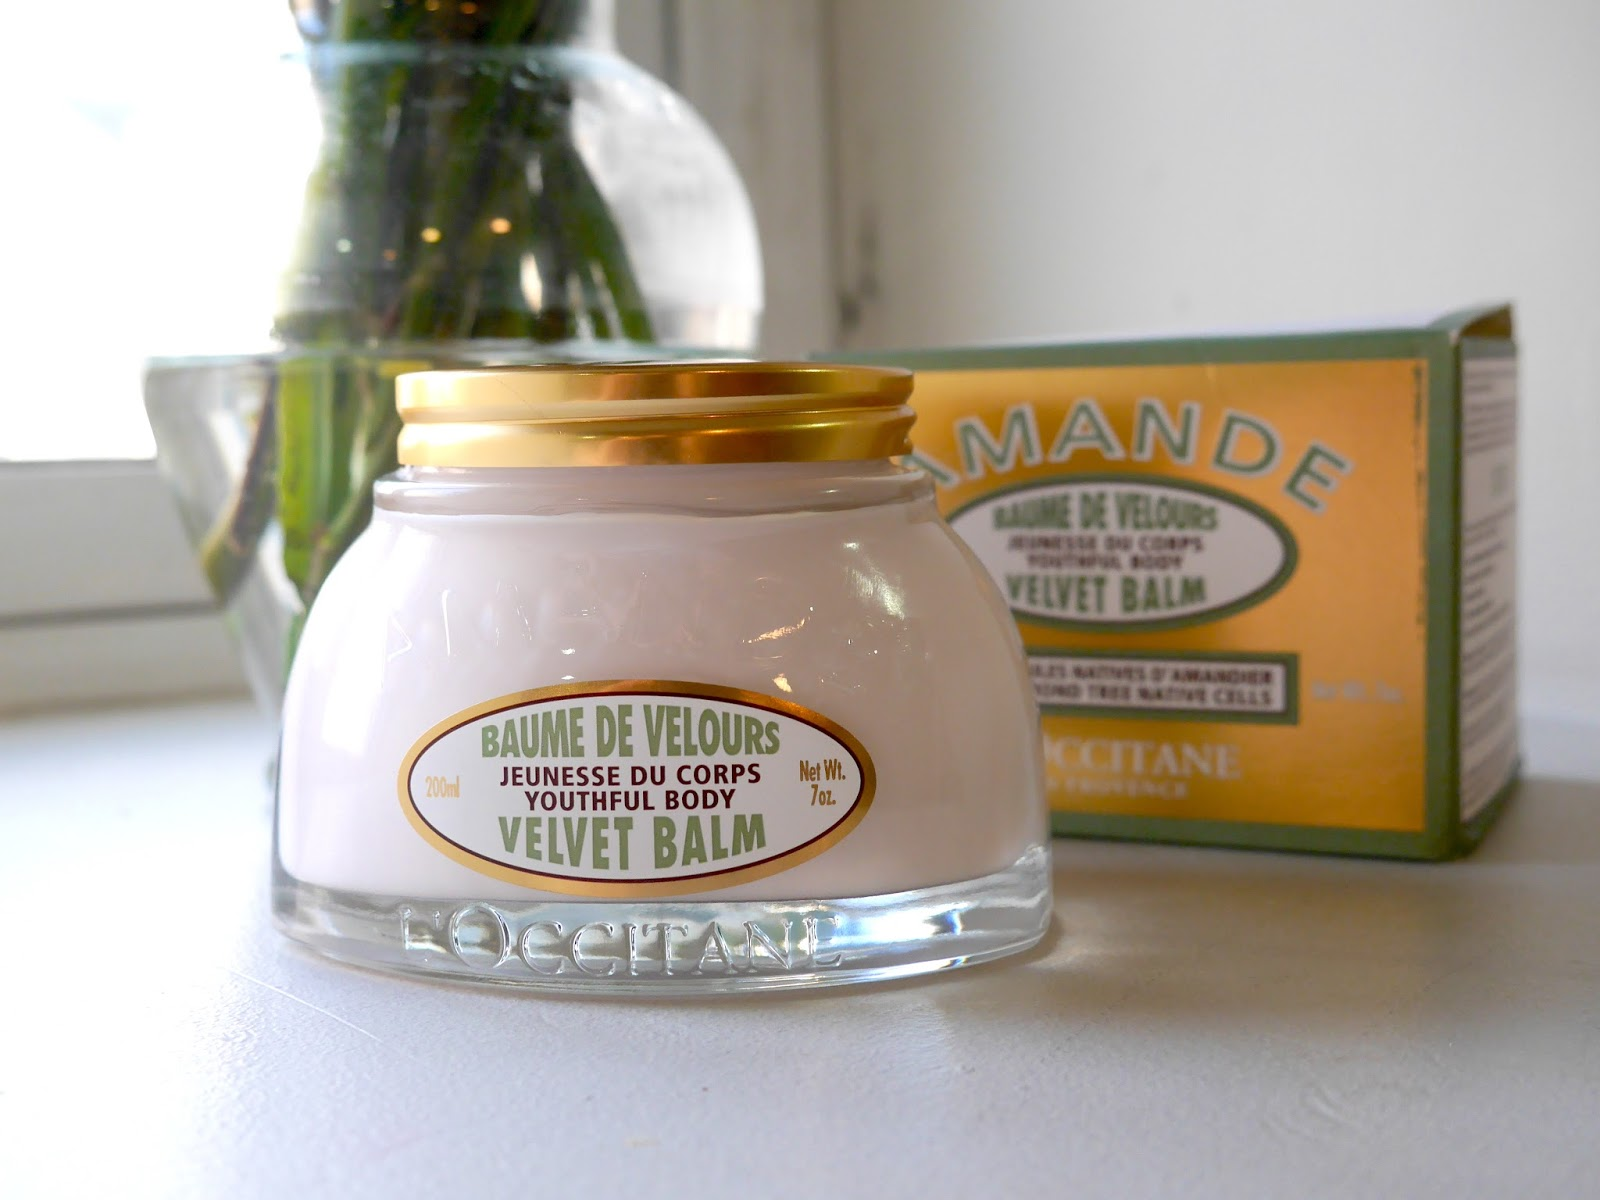 review of L'occitane's almond velvet balm amande baume de velours